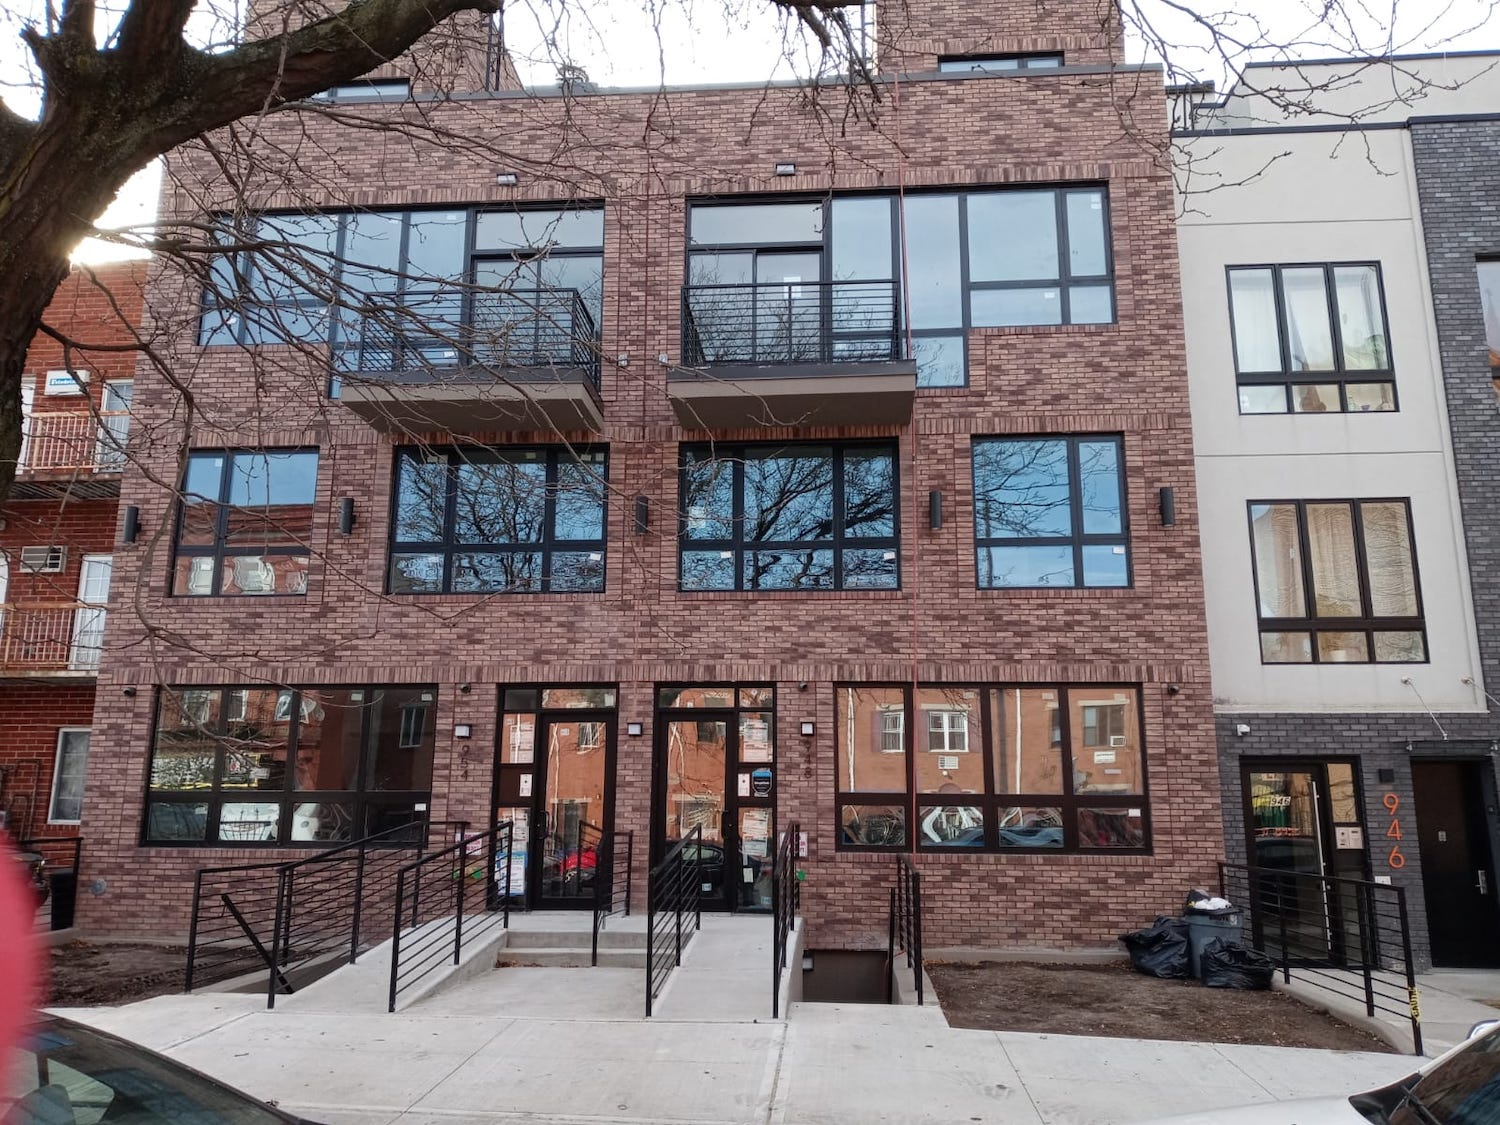 948 and 954 Herkimer Street in Bed-Stuy, Brooklyn. Image courtesy of NY Housing Connect